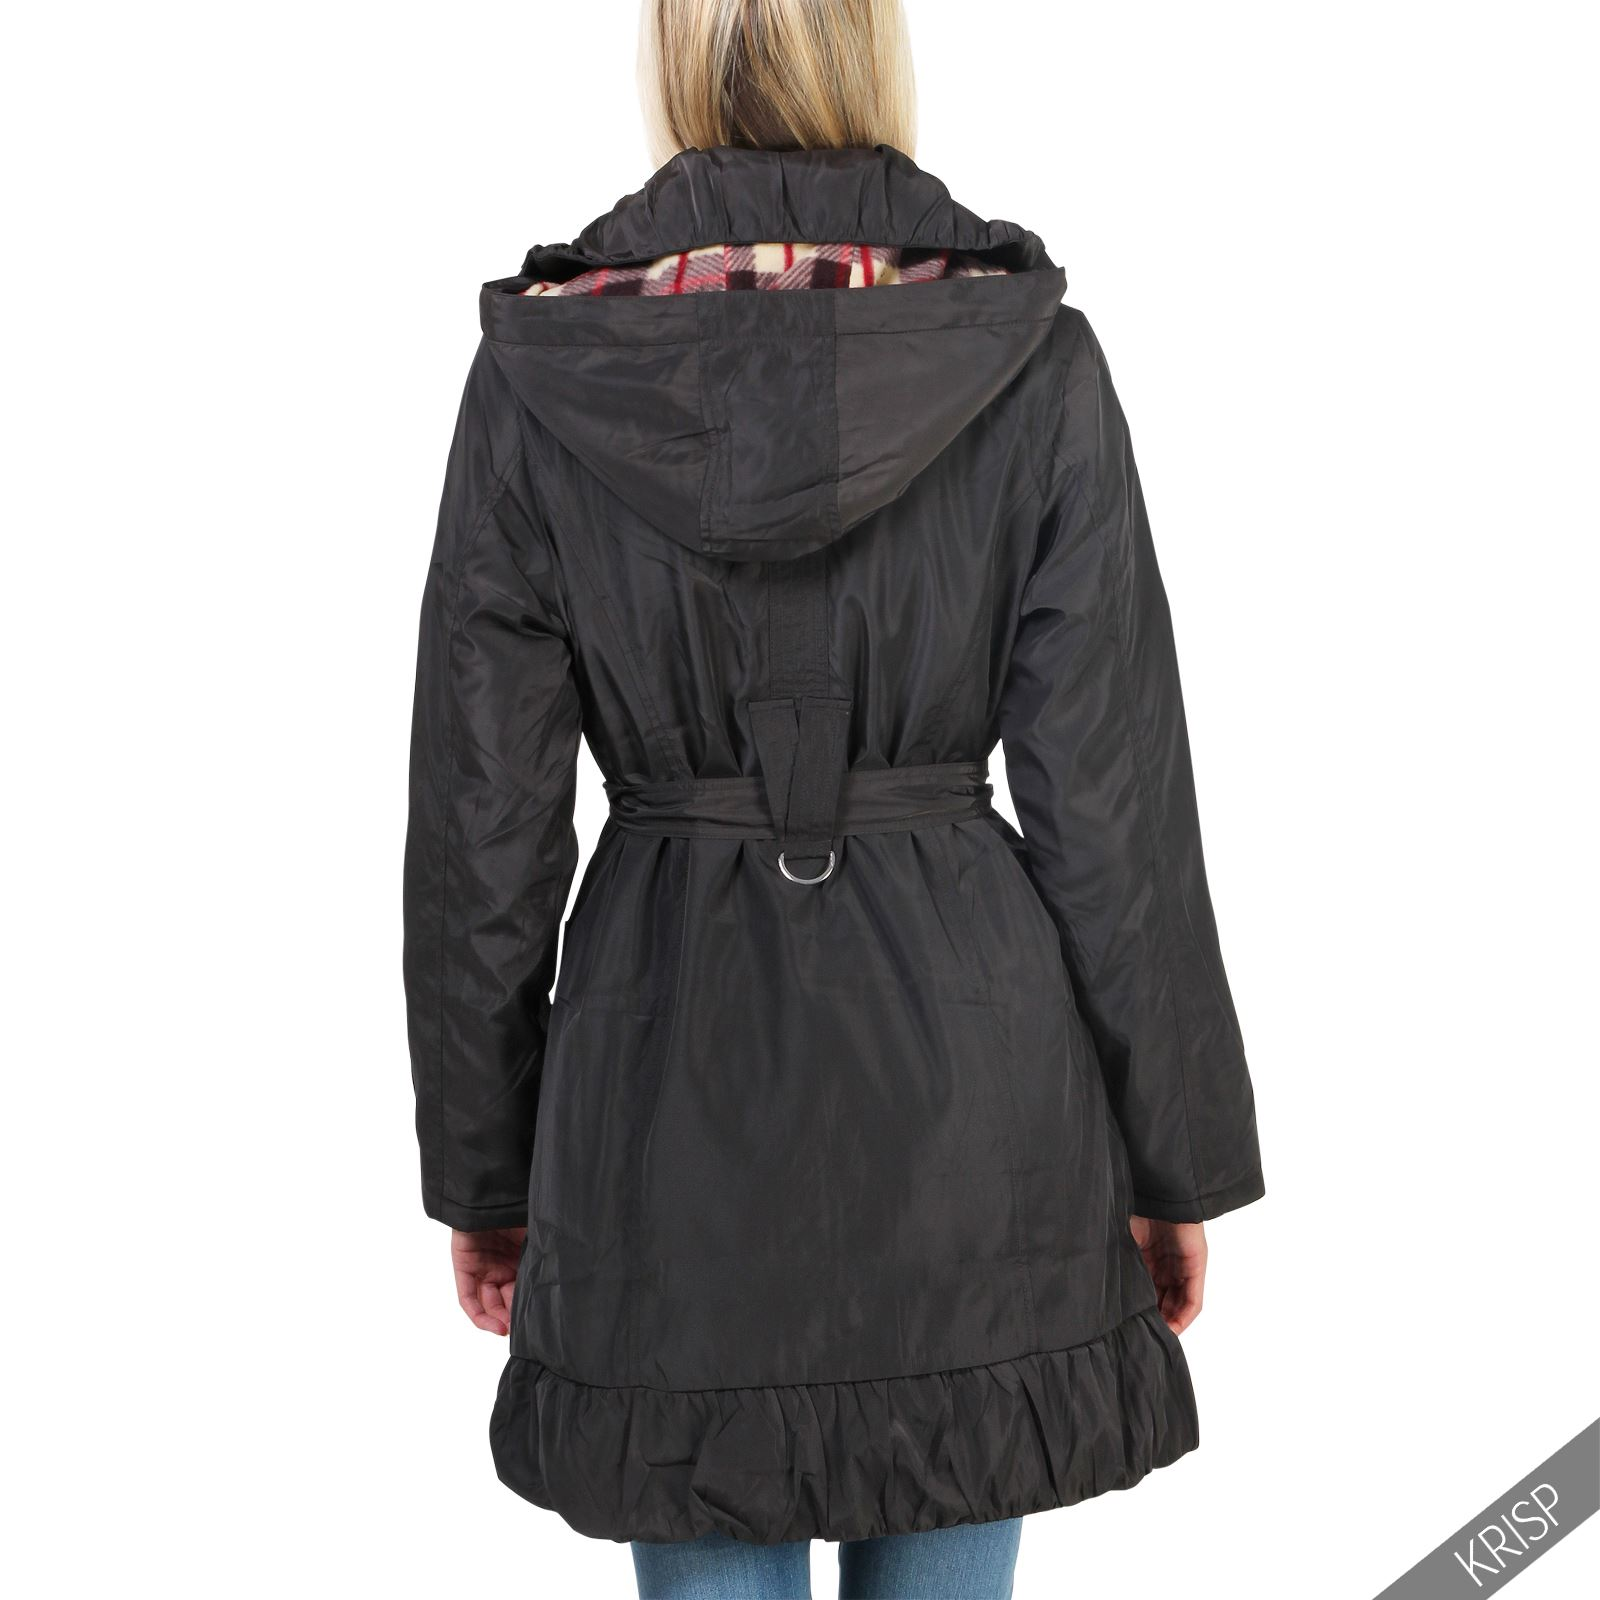 damen parka winter mantel jacke warmes karo fleece tailliert abnehmbare kapuze ebay. Black Bedroom Furniture Sets. Home Design Ideas